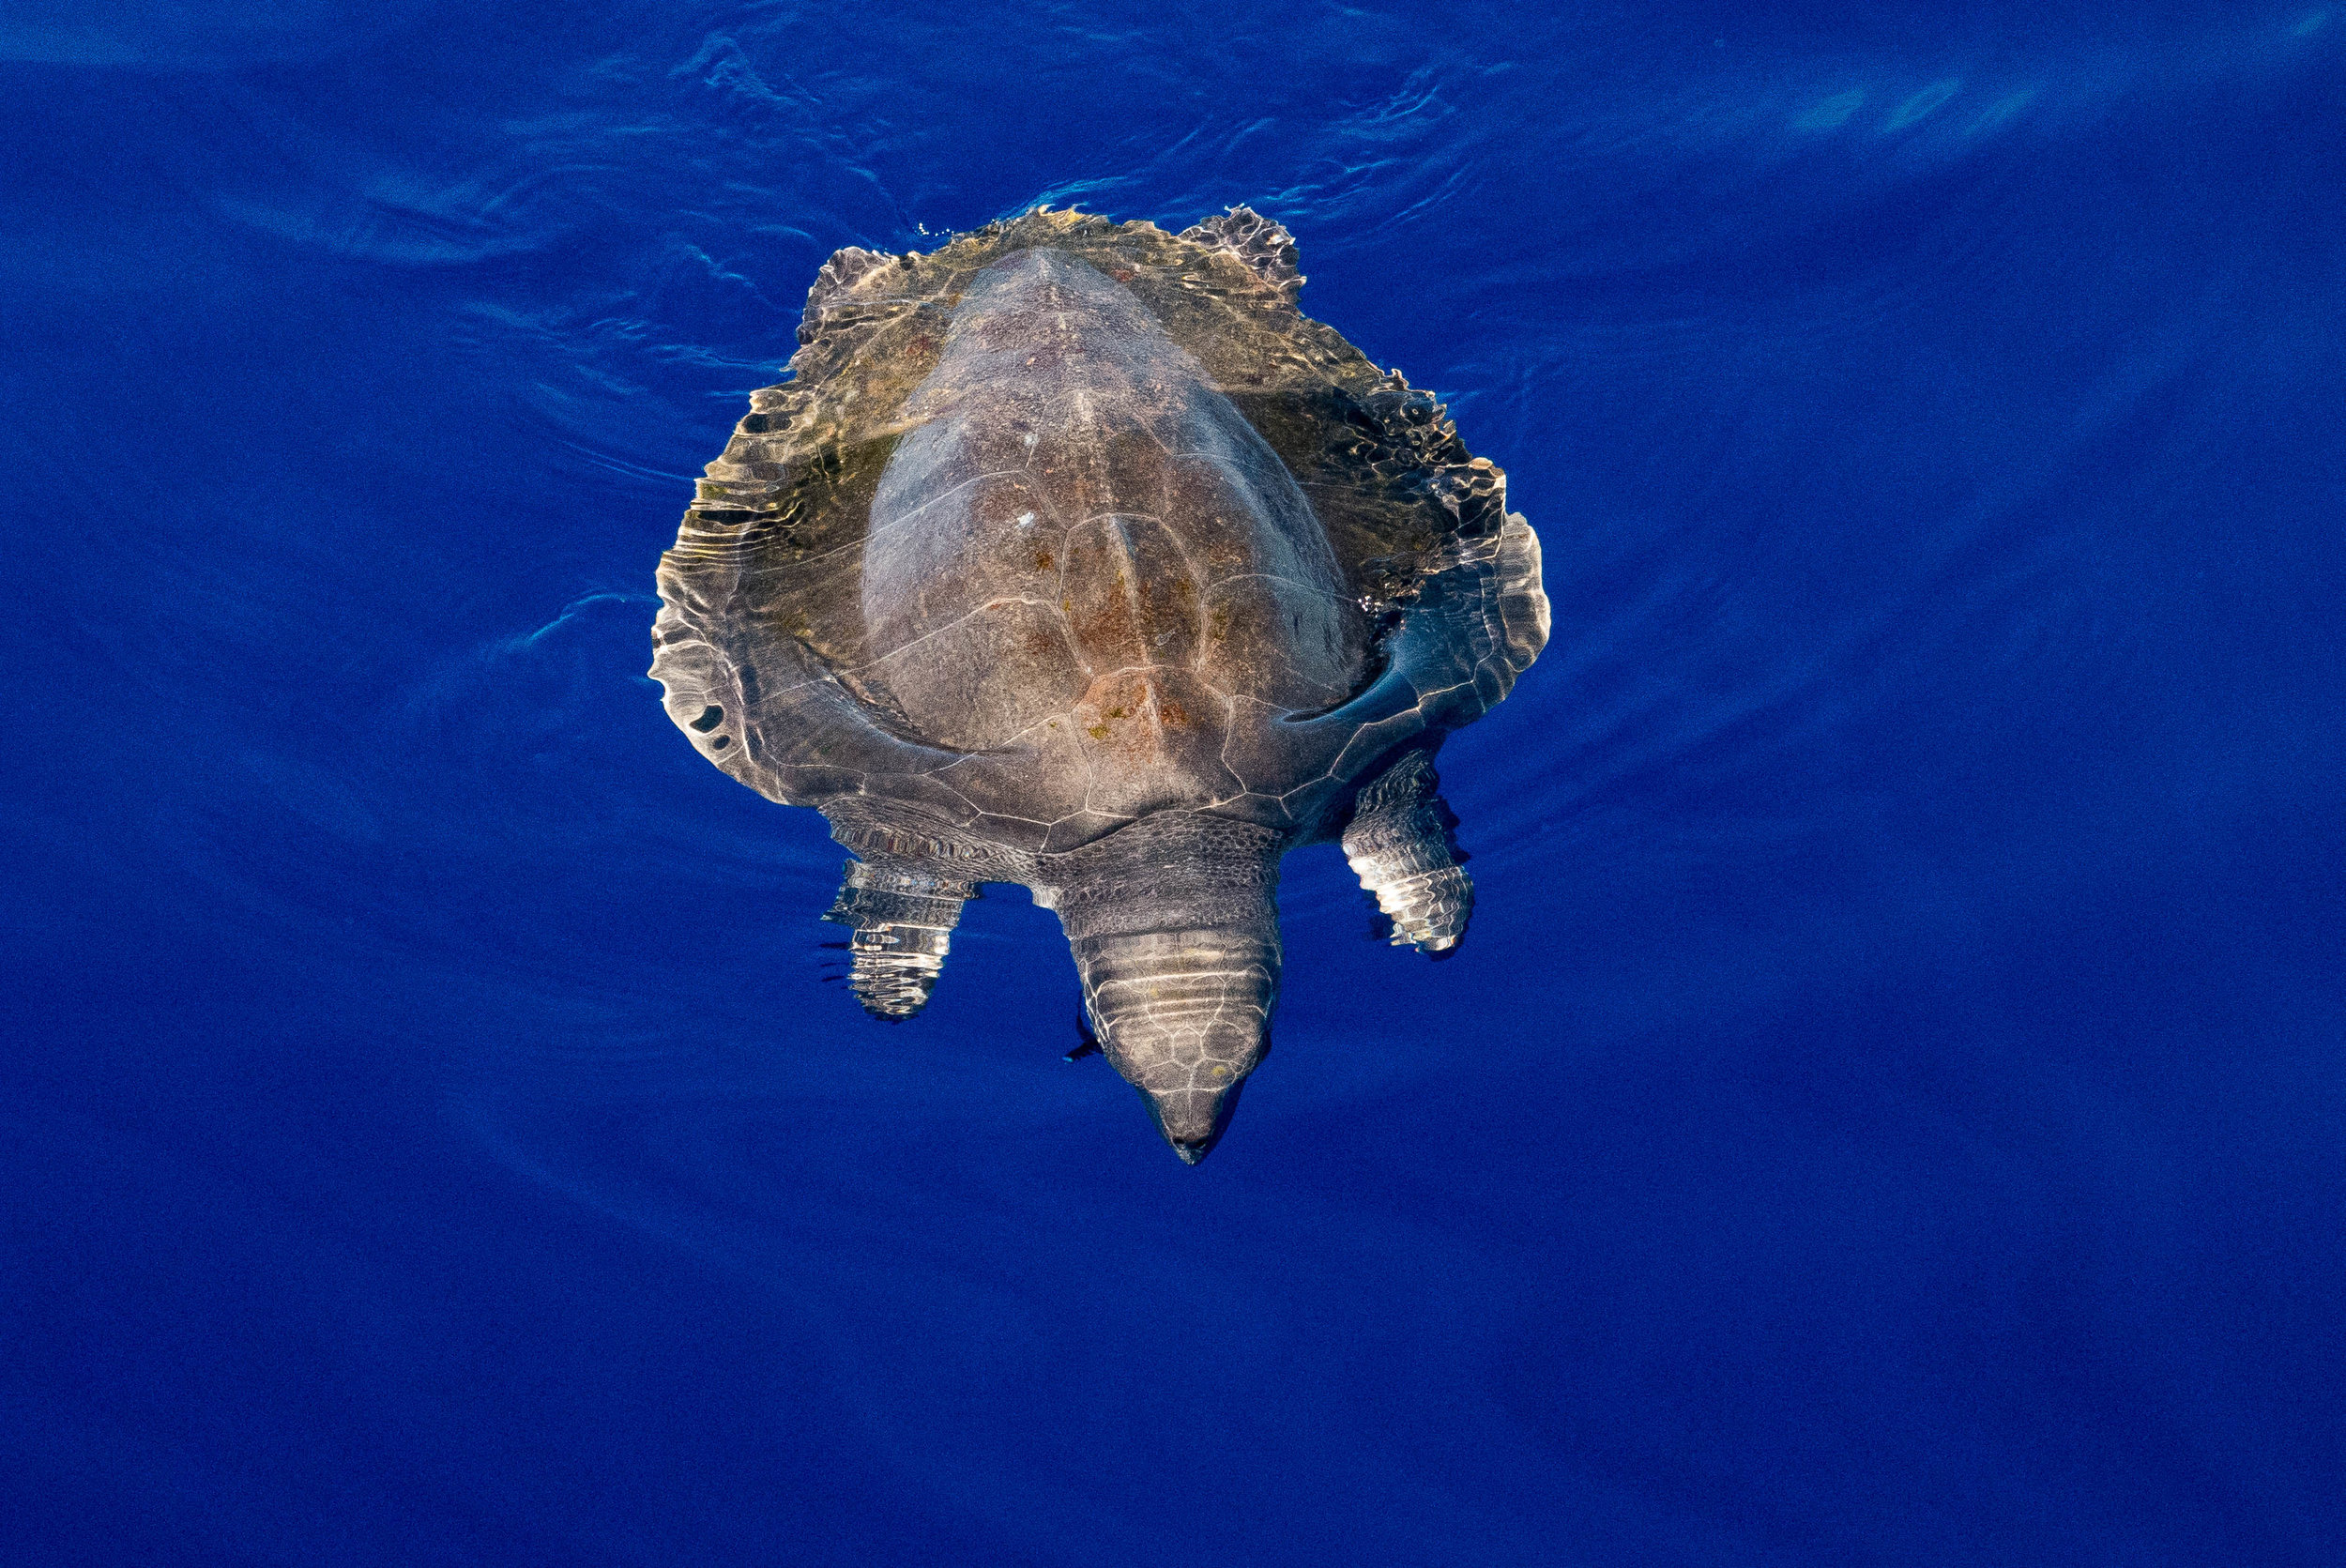 A turtle, hundreds of miles from land, as he passed us by when we were in the doldrums. Steady on.